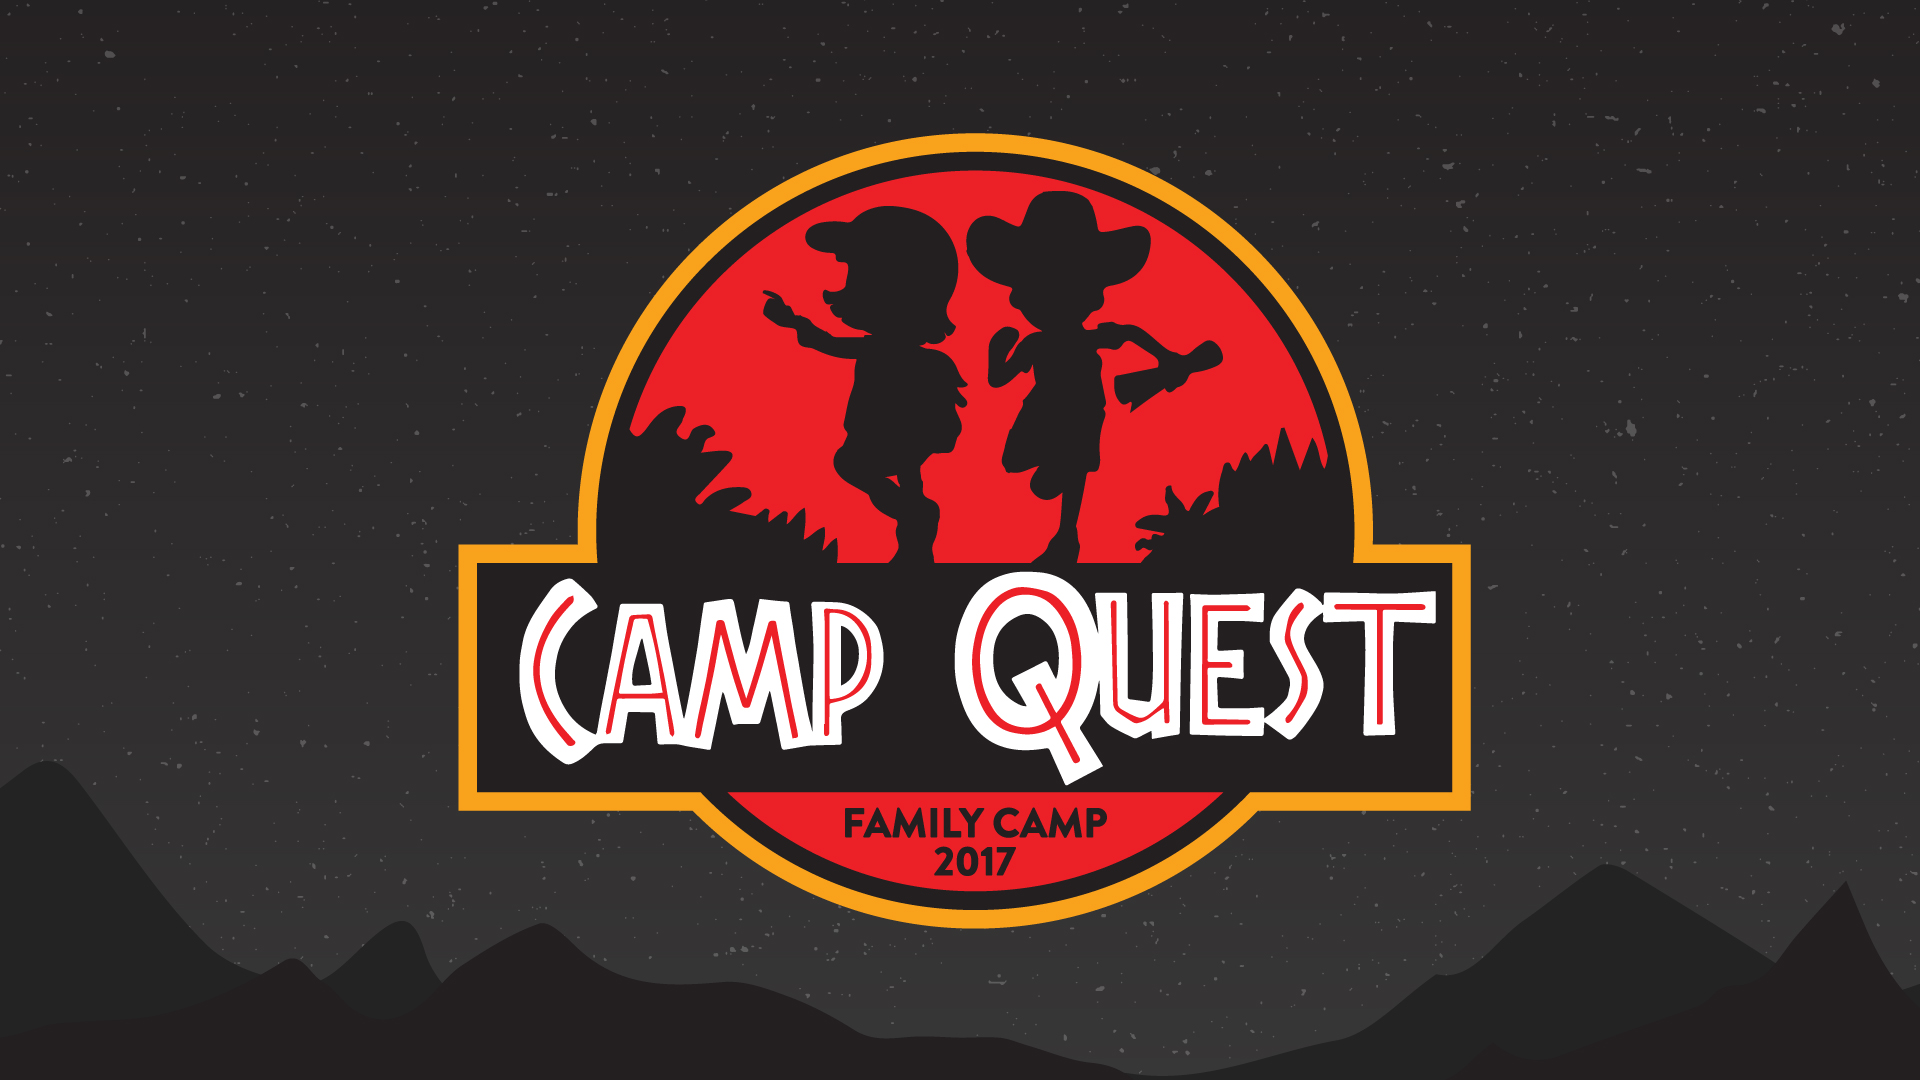 Family camp 2017 tv title